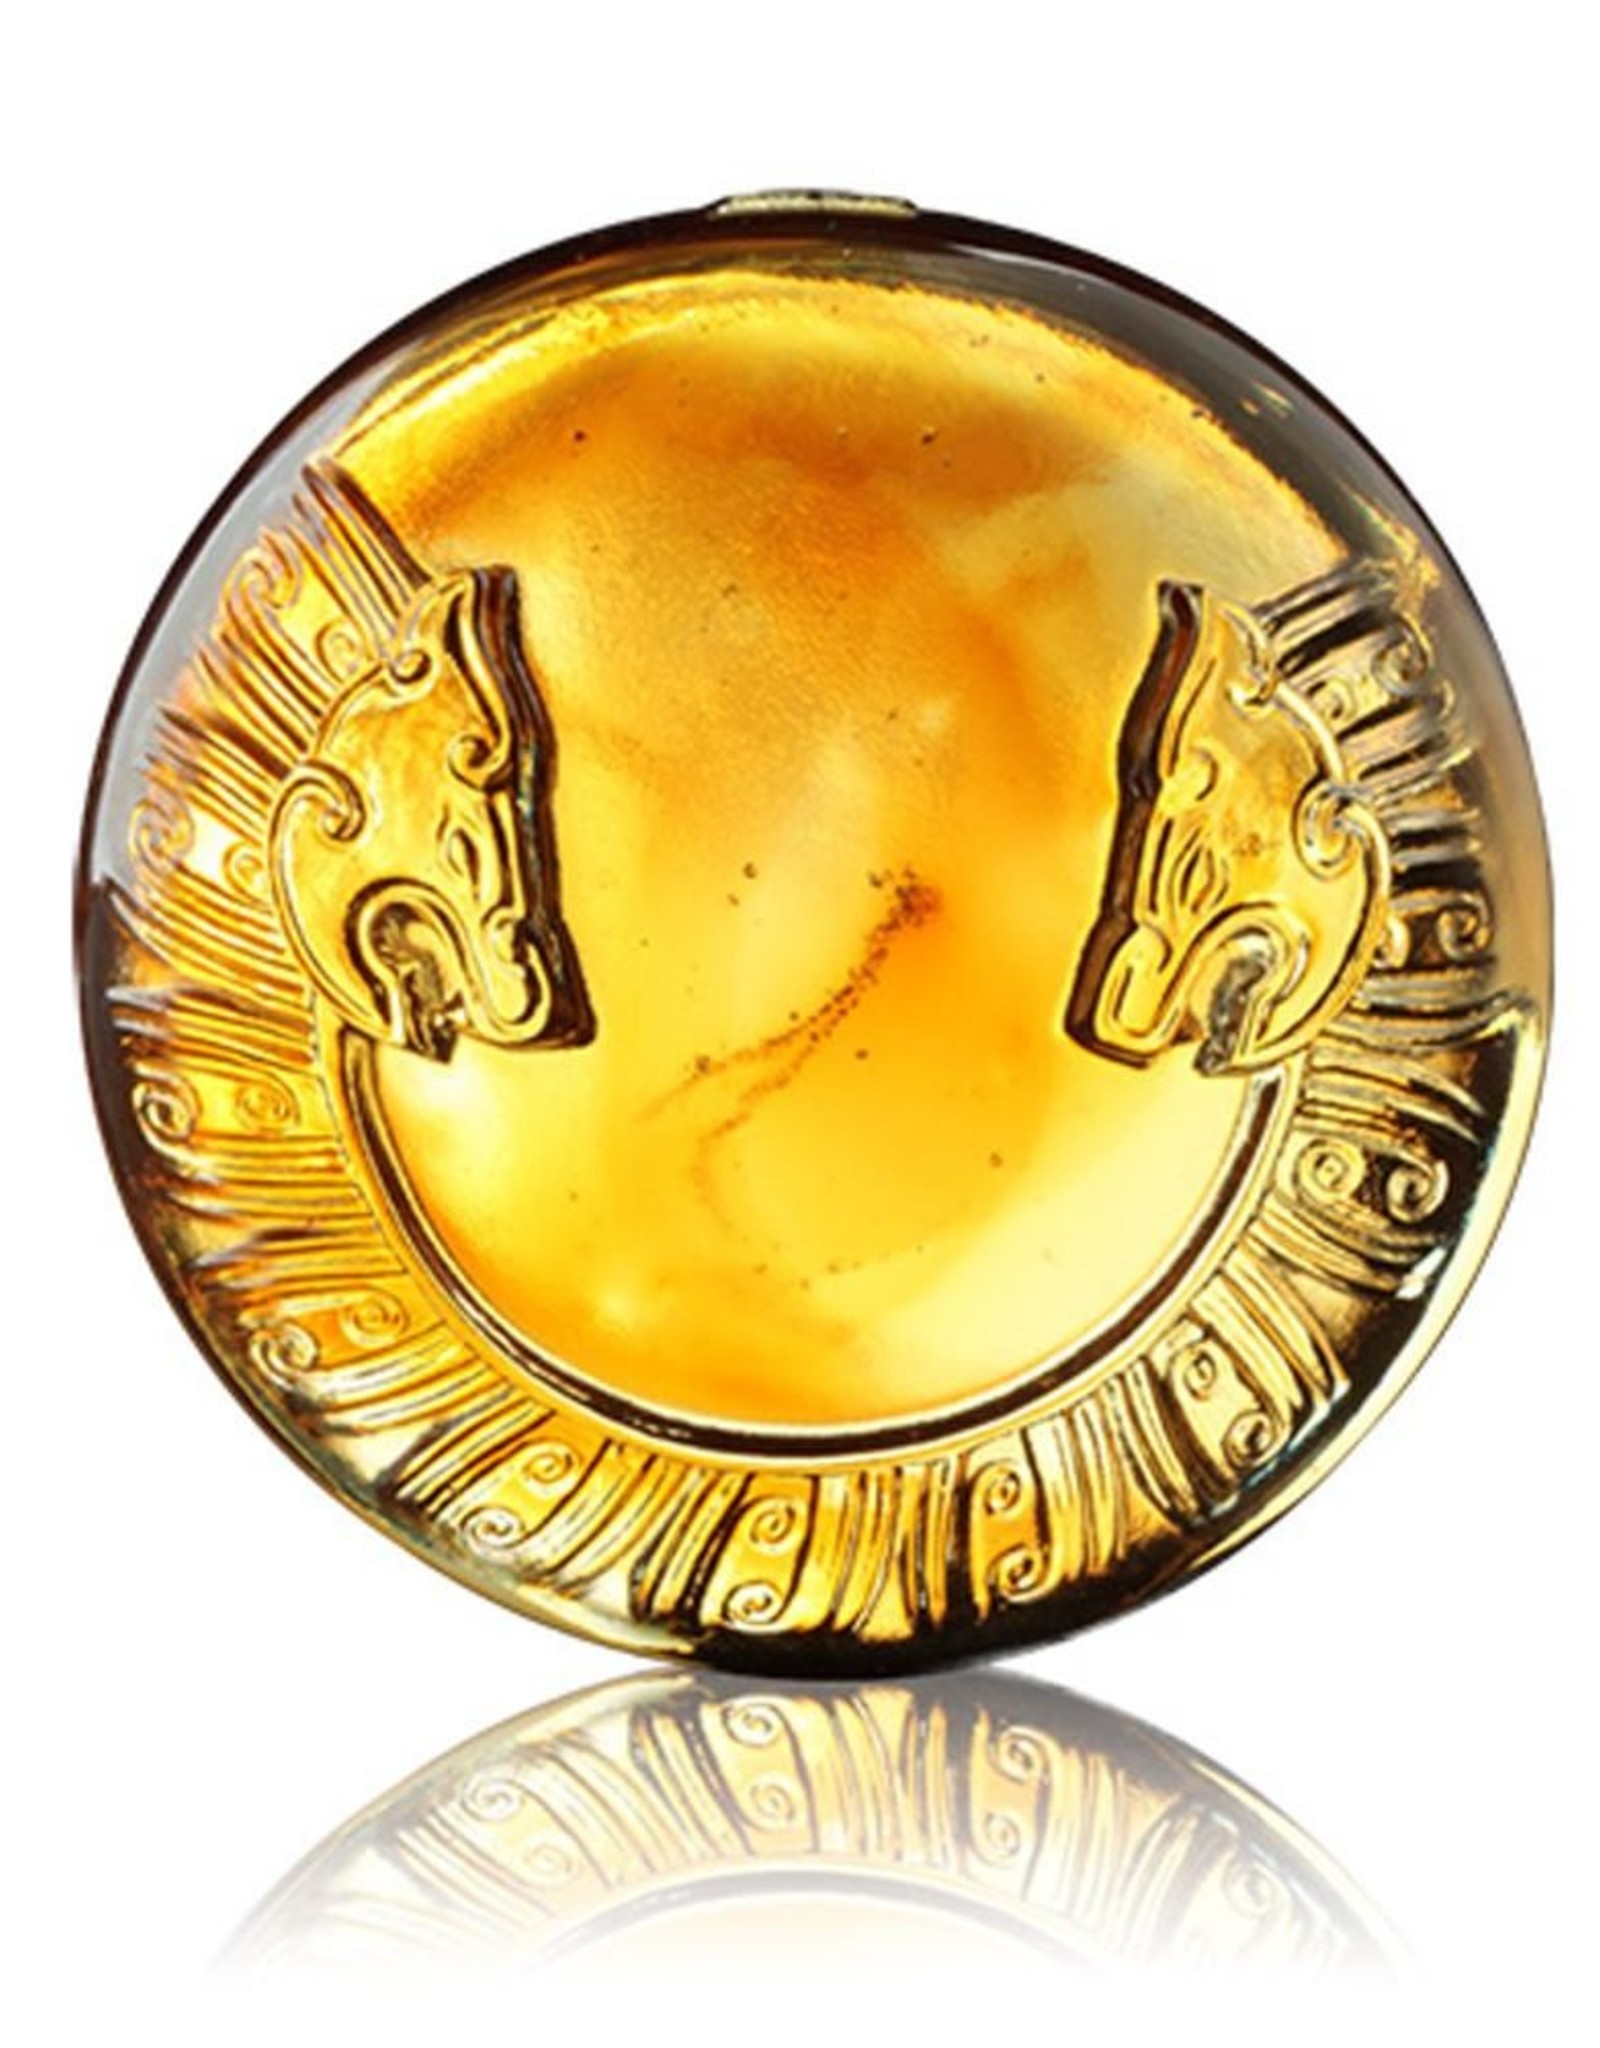 LIULI Crystal Art Crystal Mythical Tiger Paperweight, Tiger of the West: Independent, Amber/Purple Clear (Limited Edition)